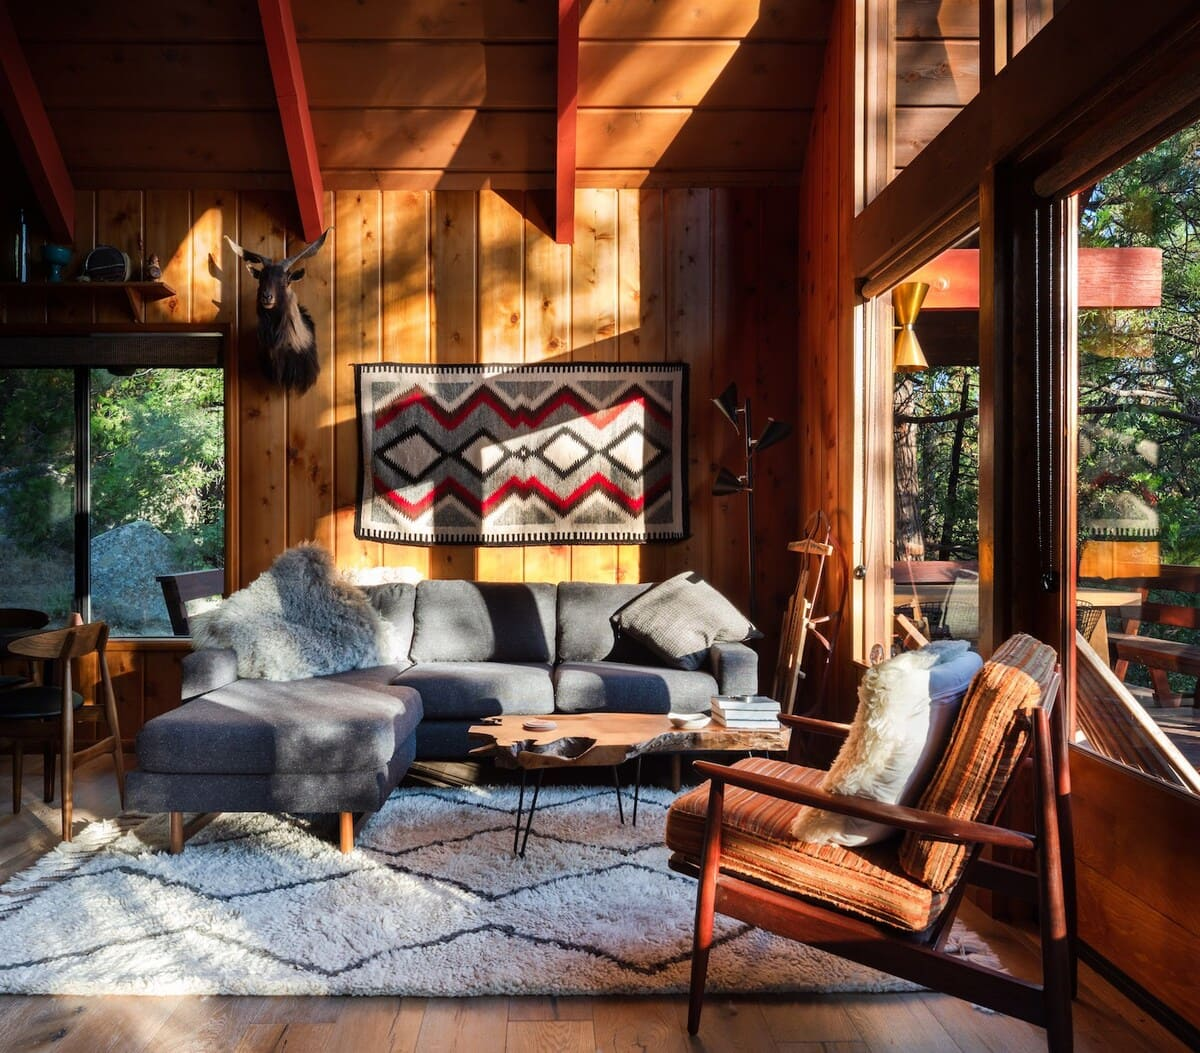 Idyllhaus - Mid-century A-frame chalet